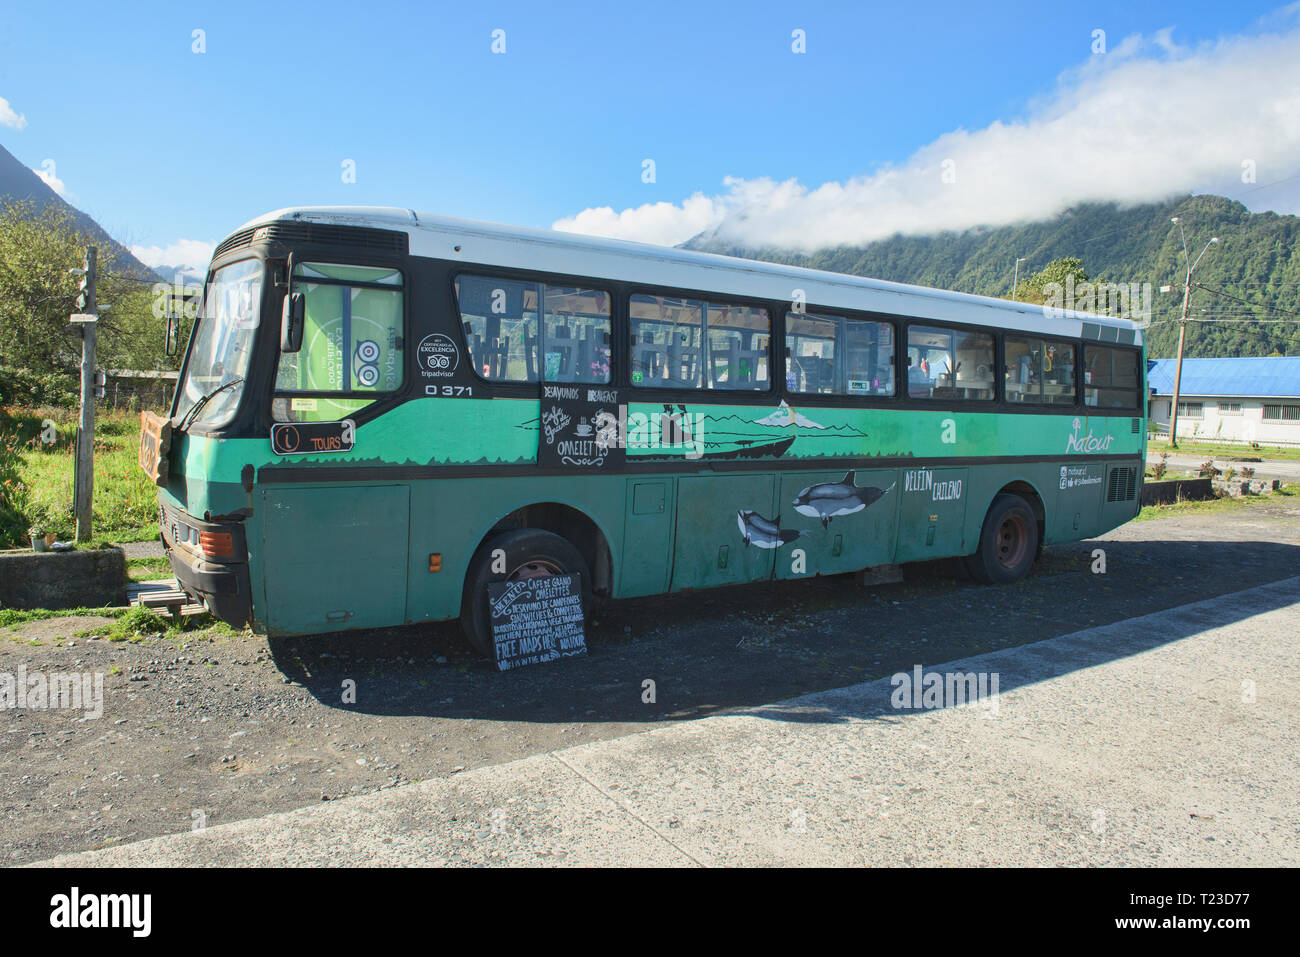 Breakfast bus, Chaitén, Patagonia, Chile - Stock Image